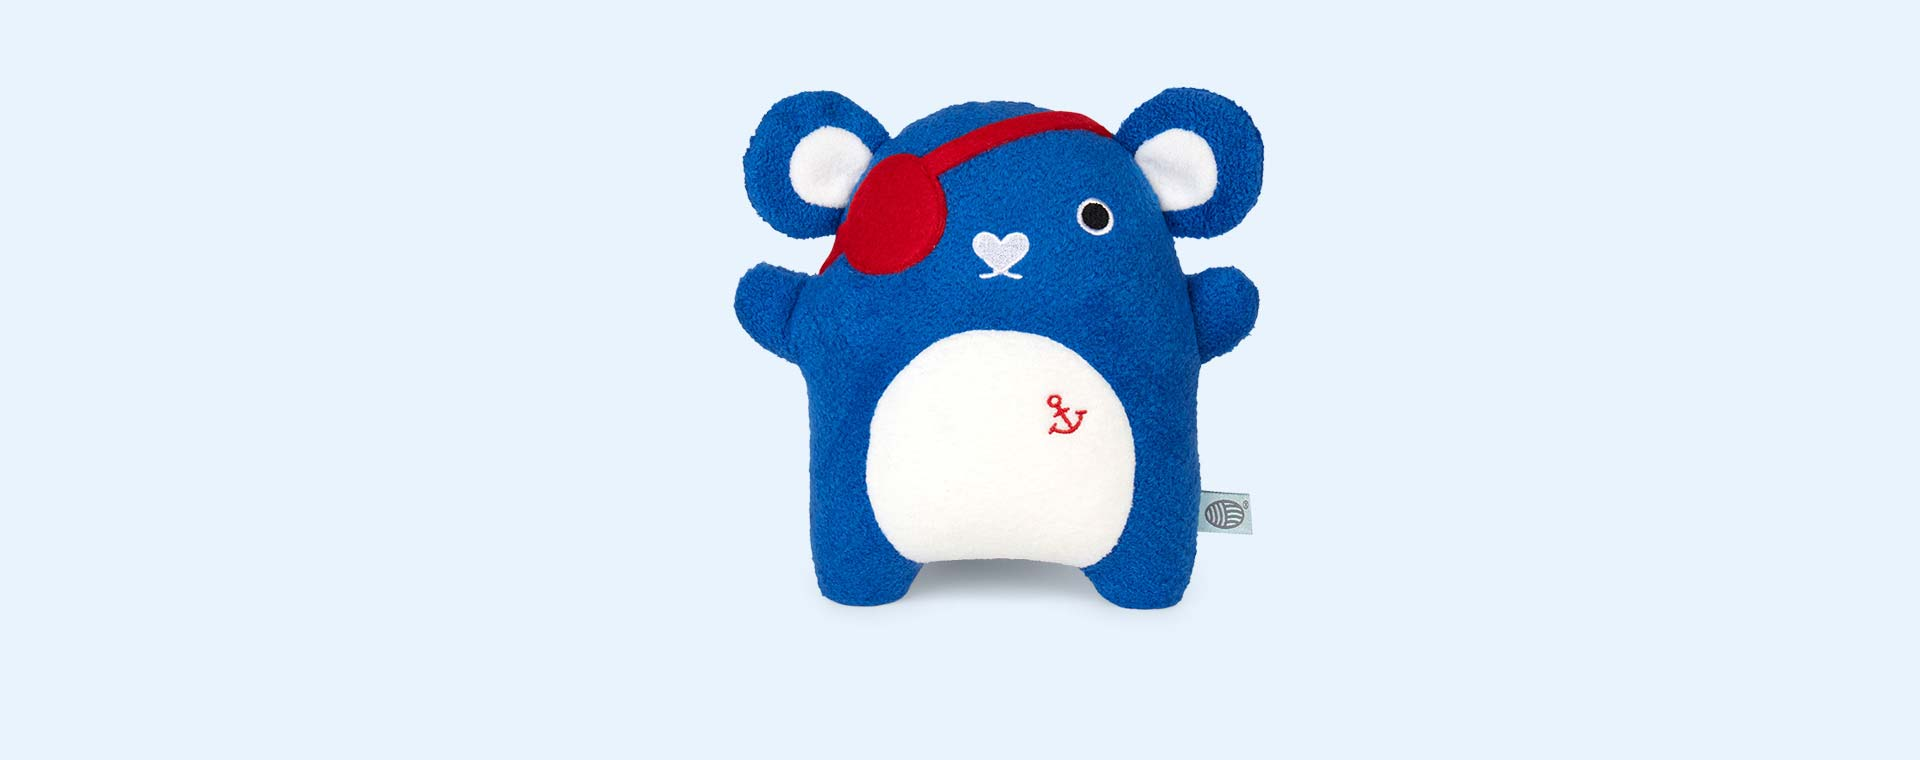 Blue Noodoll Ricehaddock Toy